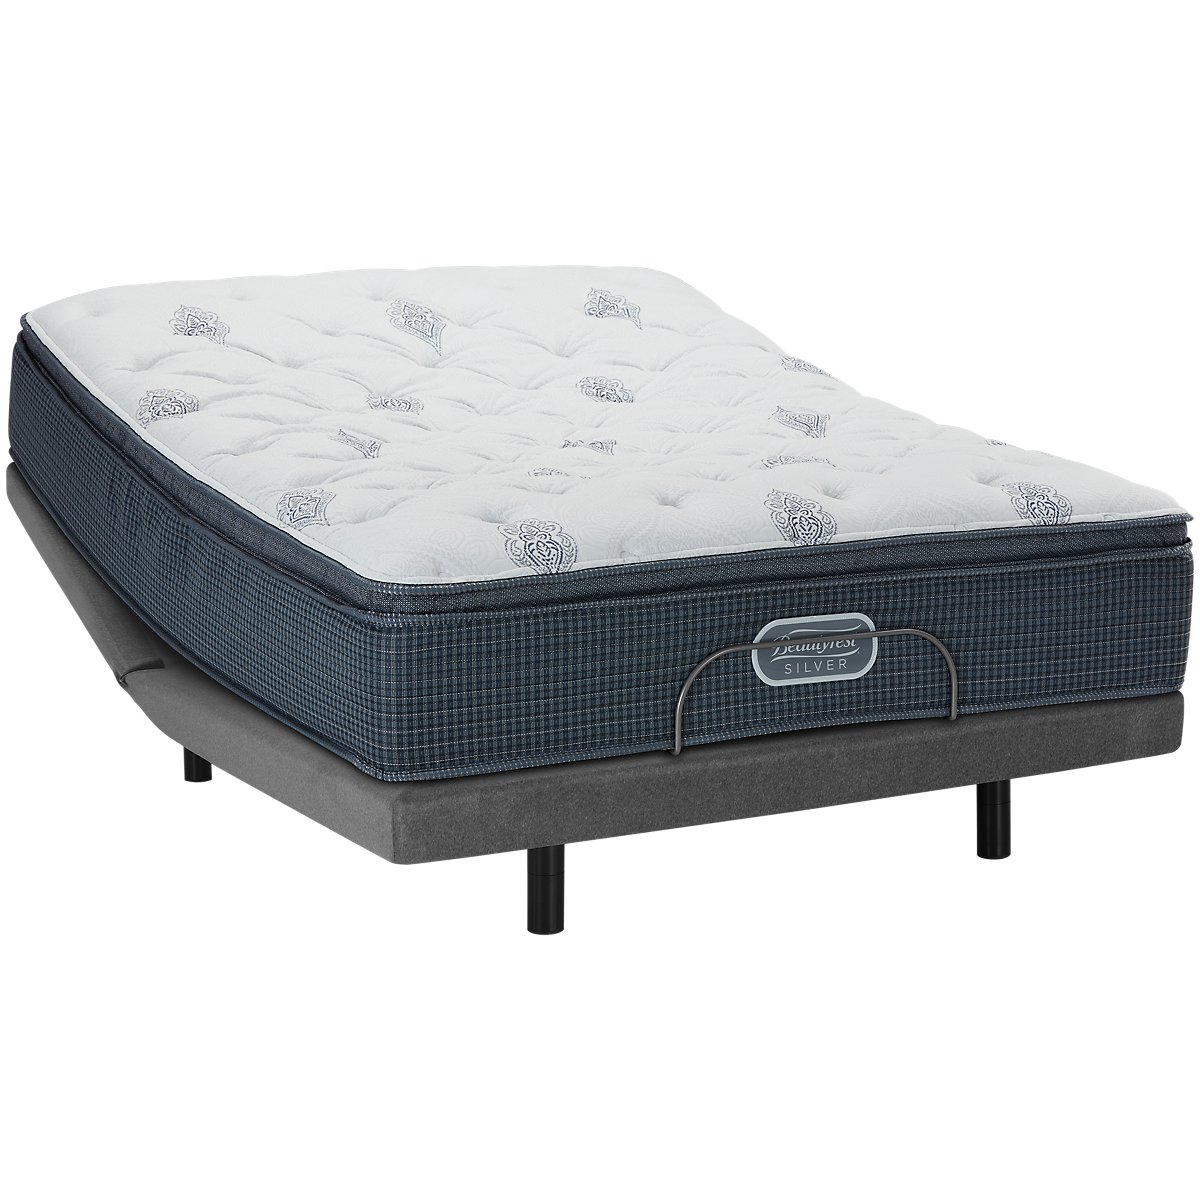 Beautyrest Silver Palm Springs Plush Pillow Top Mattress